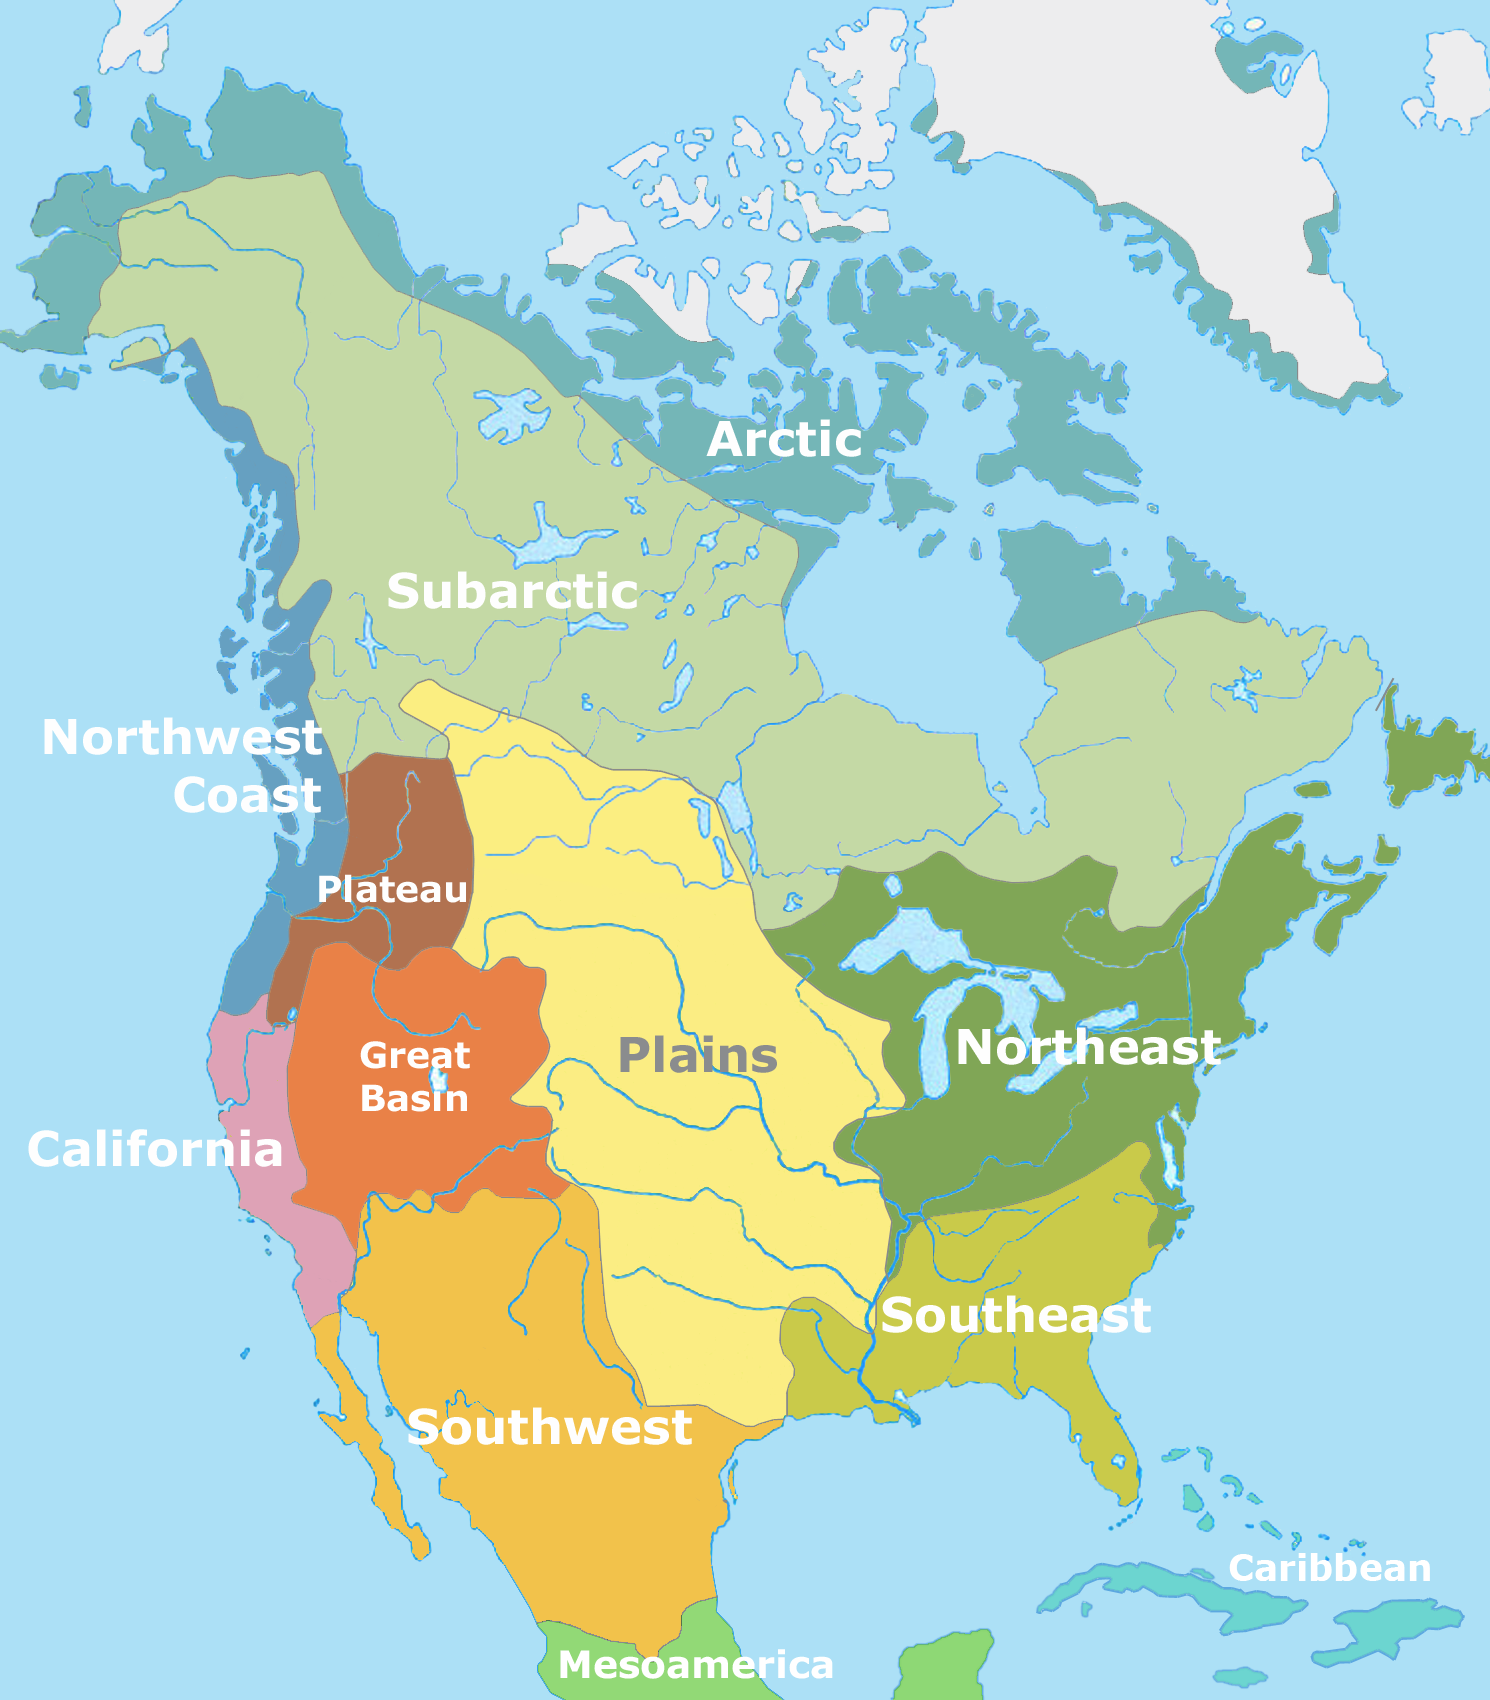 Native American cultures in the United States - Wikipedia